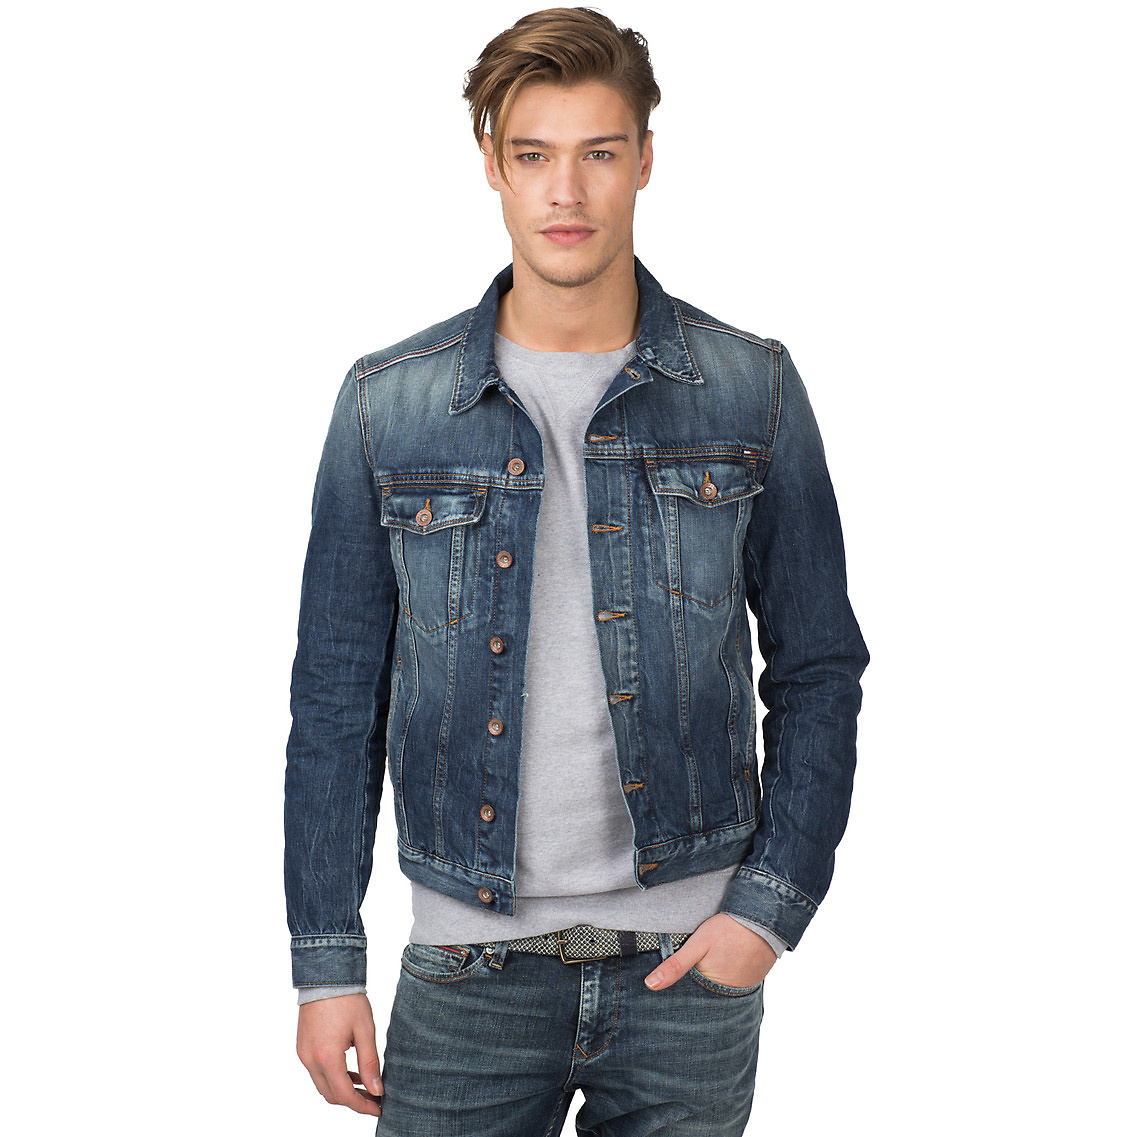 Tommy Hilfiger Iggy Denim Jacket in Blue for Men - Lyst